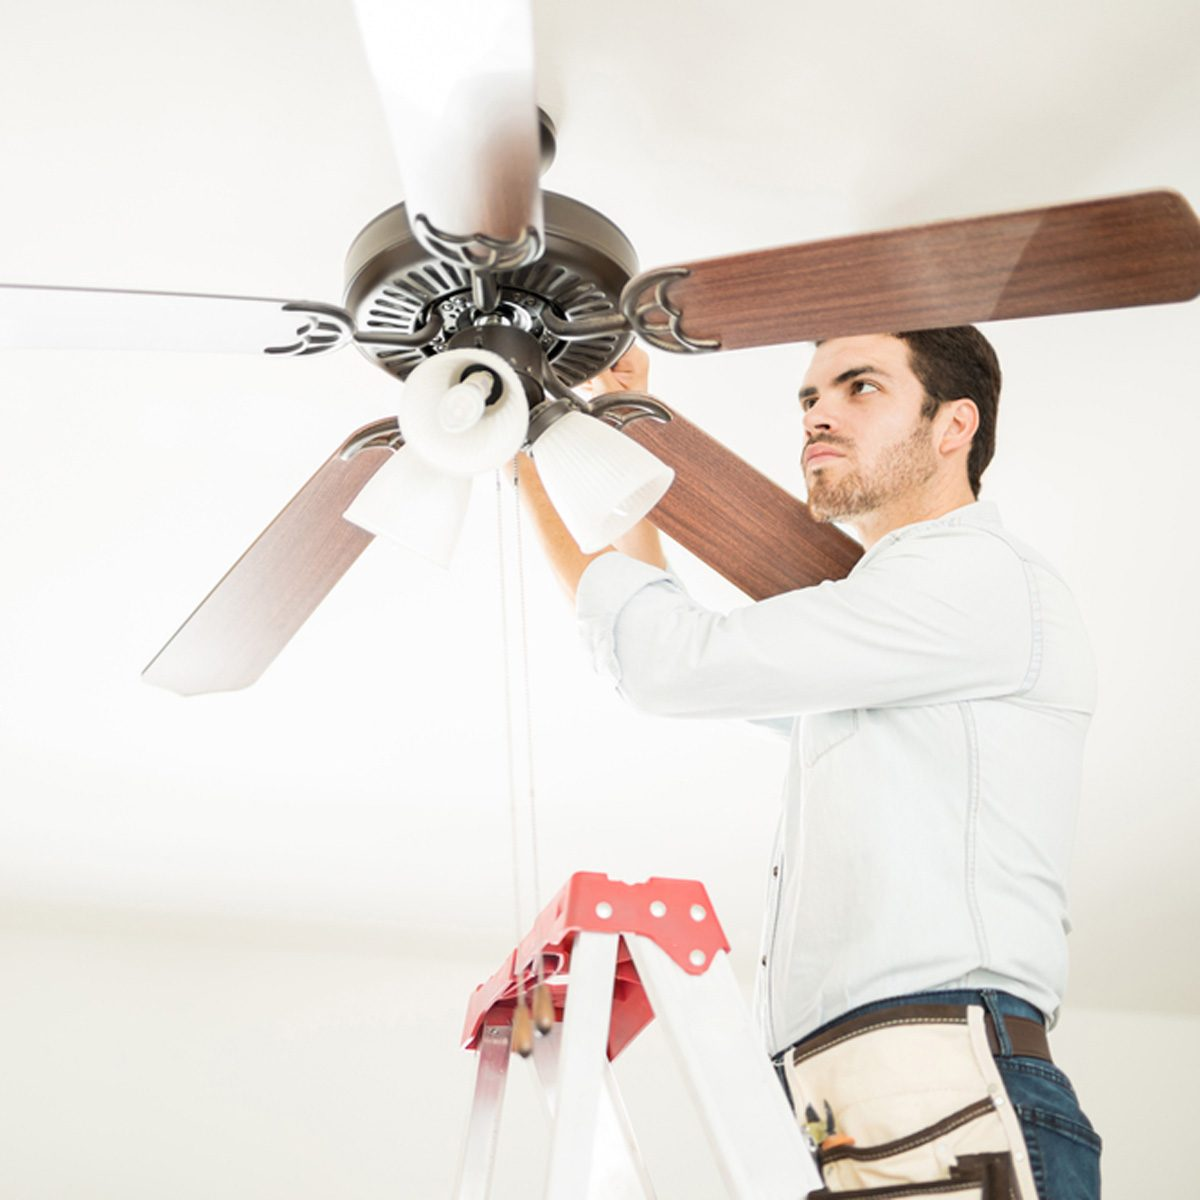 Set Your Ceiling Fans To Rotate Counter Clockwise